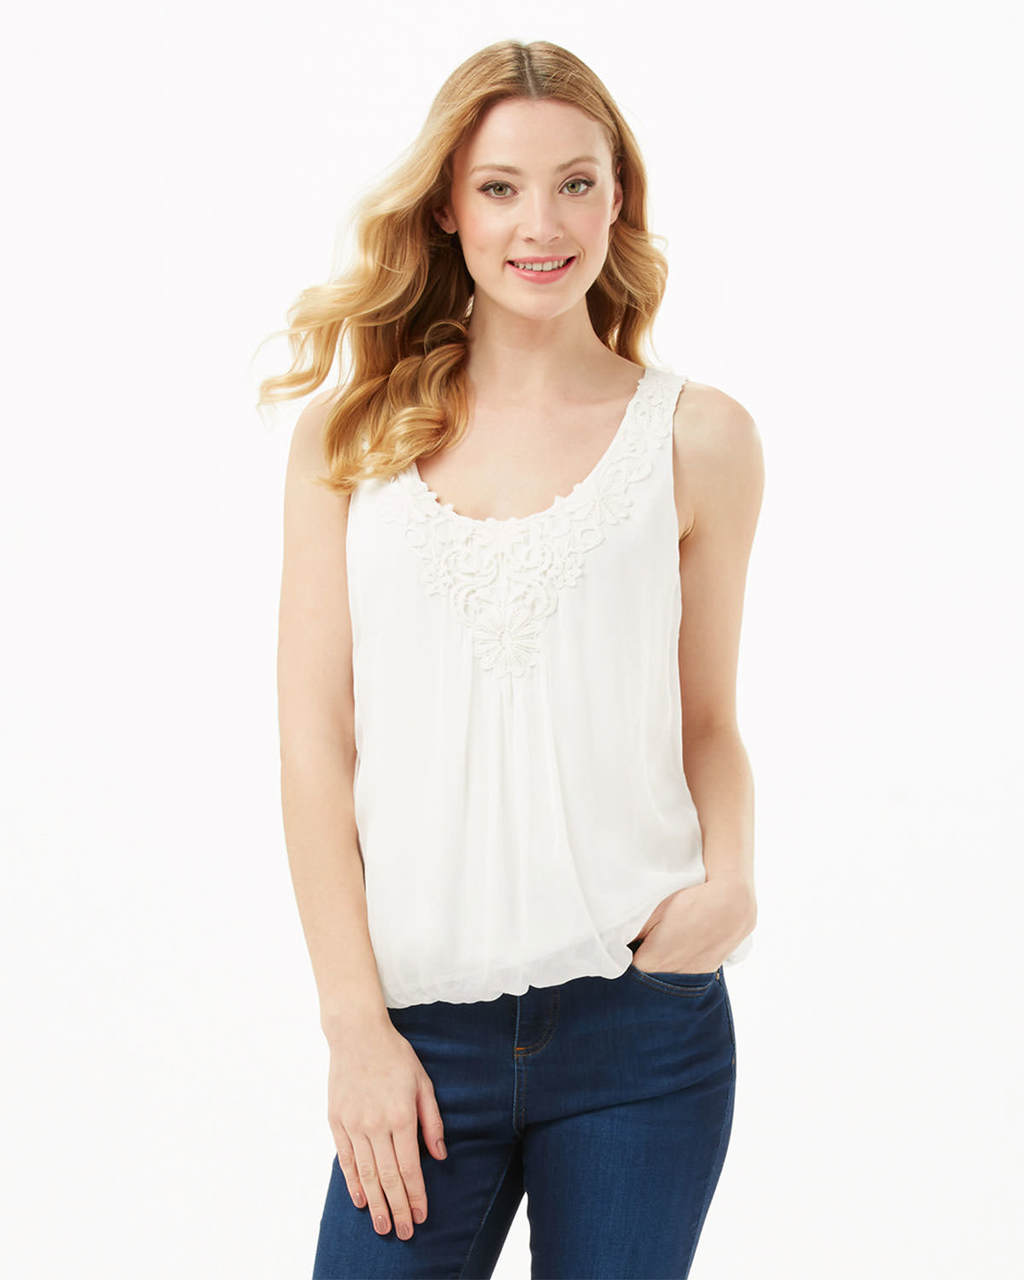 Lua Lace Trim Blouse - neckline: round neck; sleeve style: sleeveless; style: vest top; predominant colour: white; occasions: evening; length: standard; fibres: silk - 100%; fit: body skimming; sleeve length: sleeveless; texture group: lace; pattern type: fabric; pattern size: light/subtle; pattern: patterned/print; embellishment: lace; season: s/s 2016